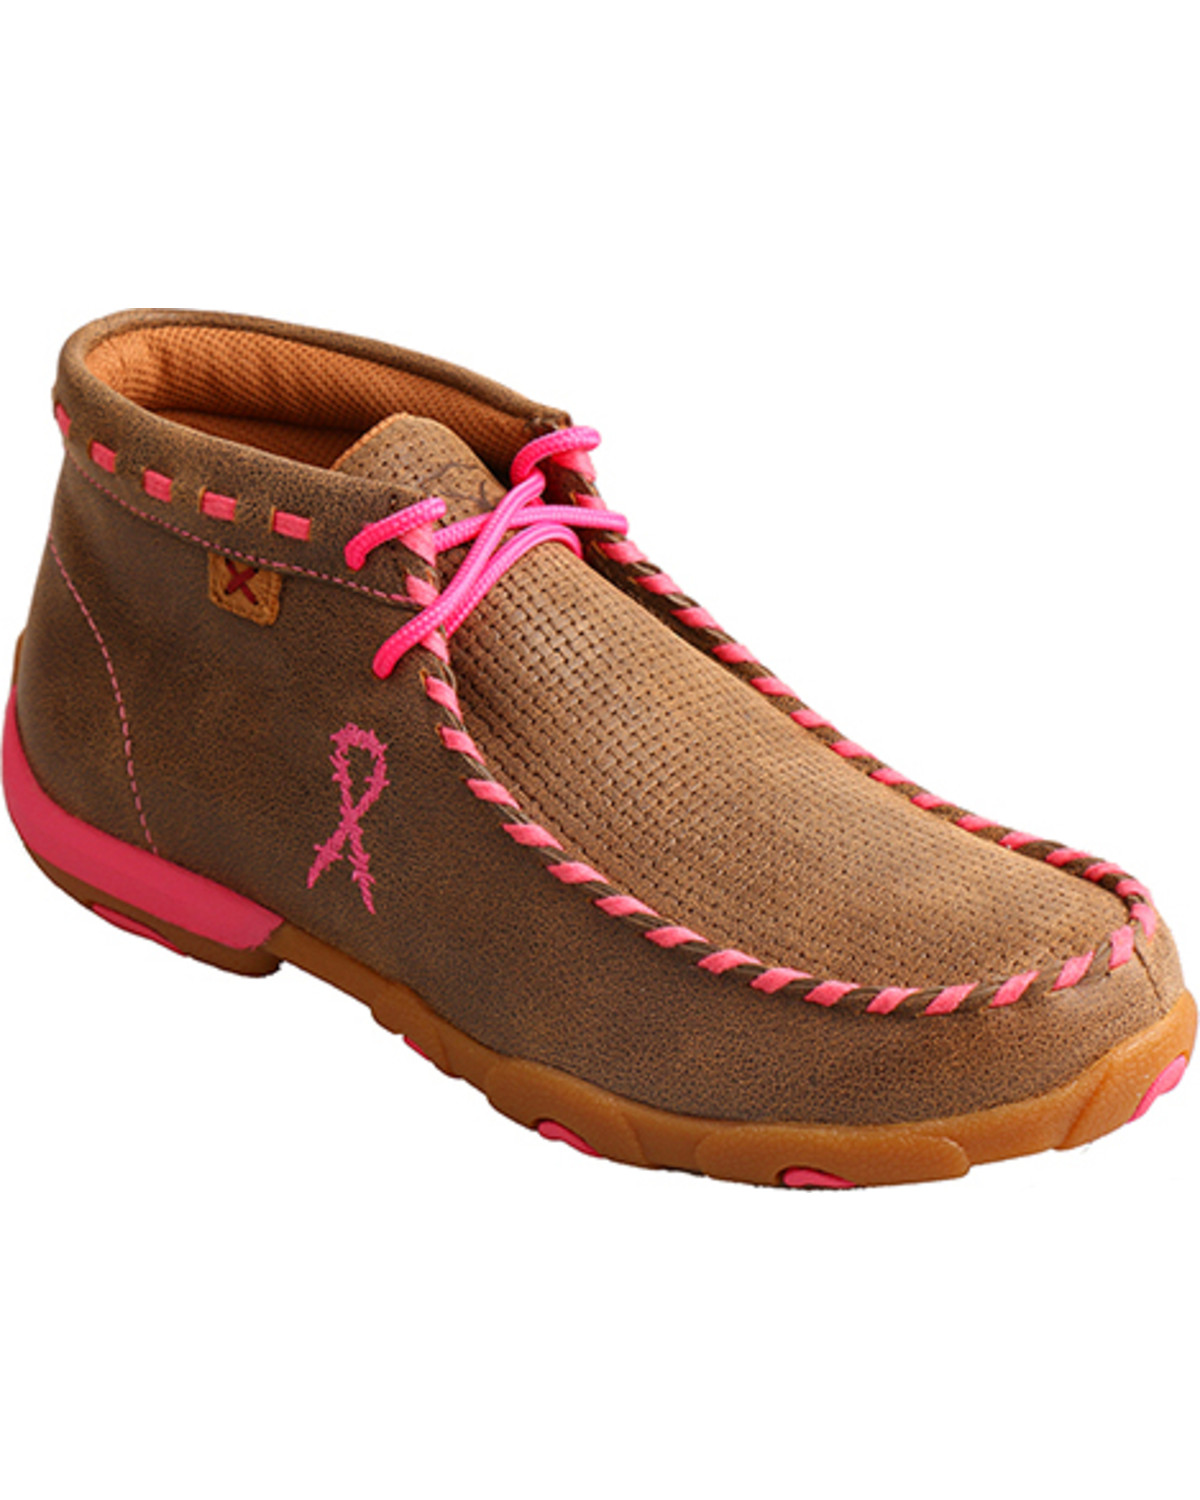 78fb9a85367 Twisted X Boots Women s Driving Moccasins